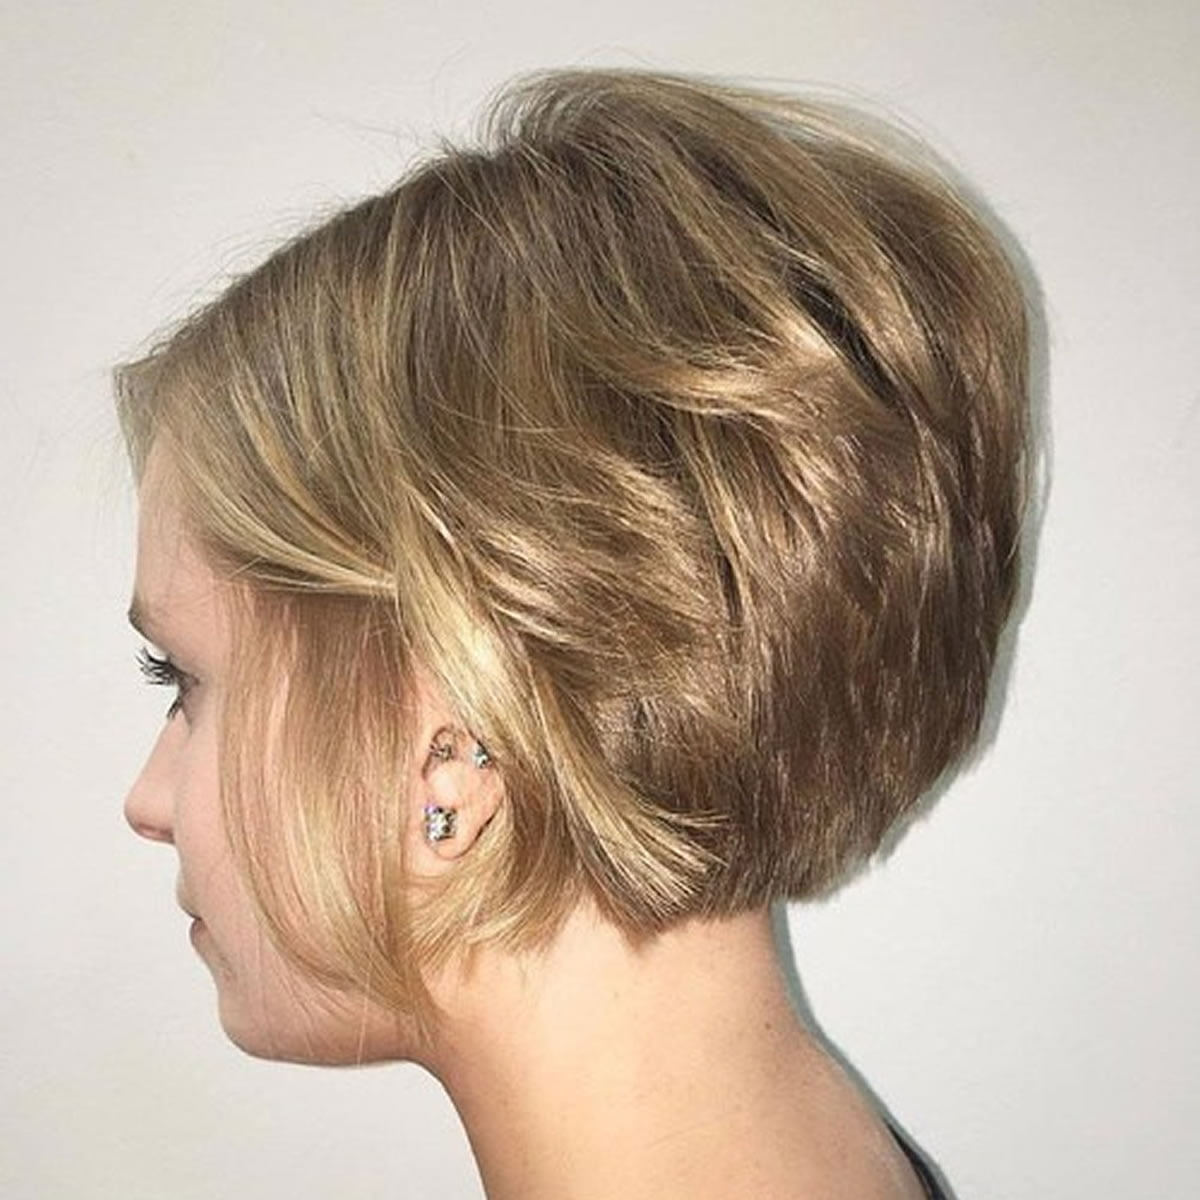 2018 Short Haircuts and Hairstyles